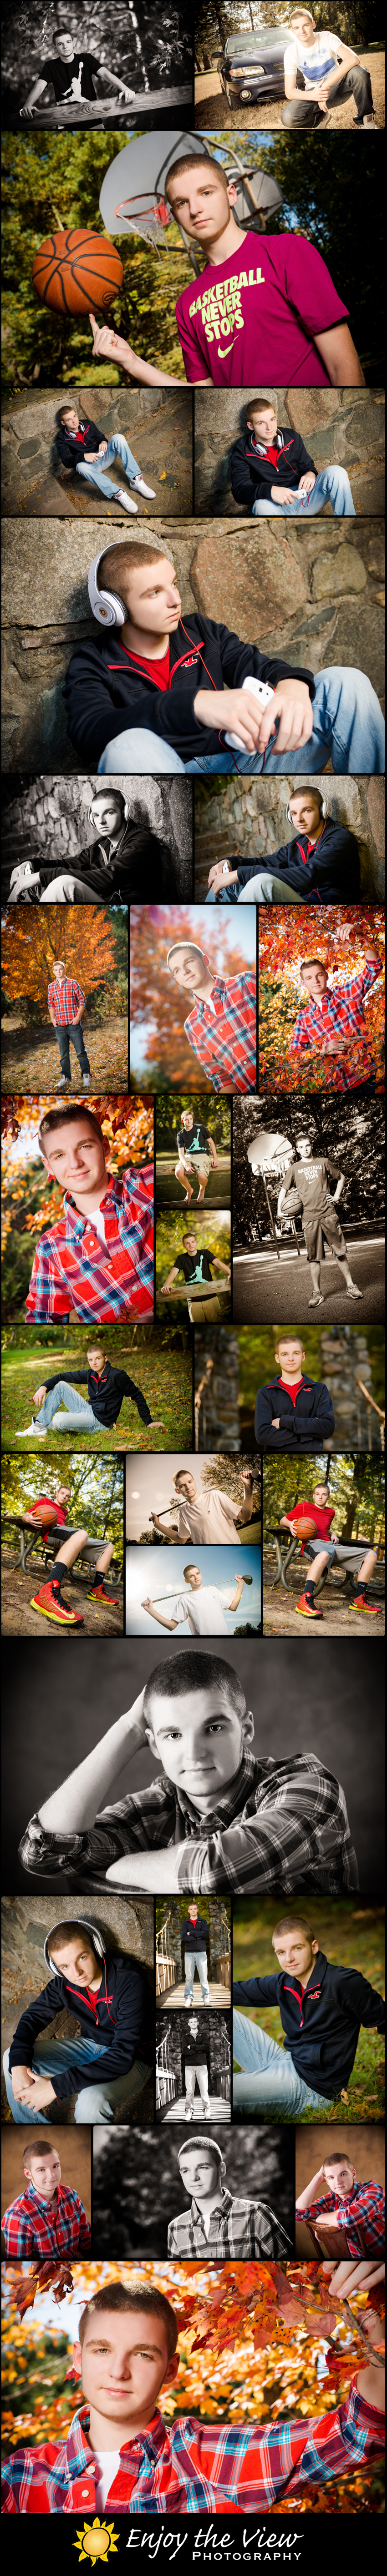 Dillon, Senior Class of 2014 {Clio Senior Photographers}